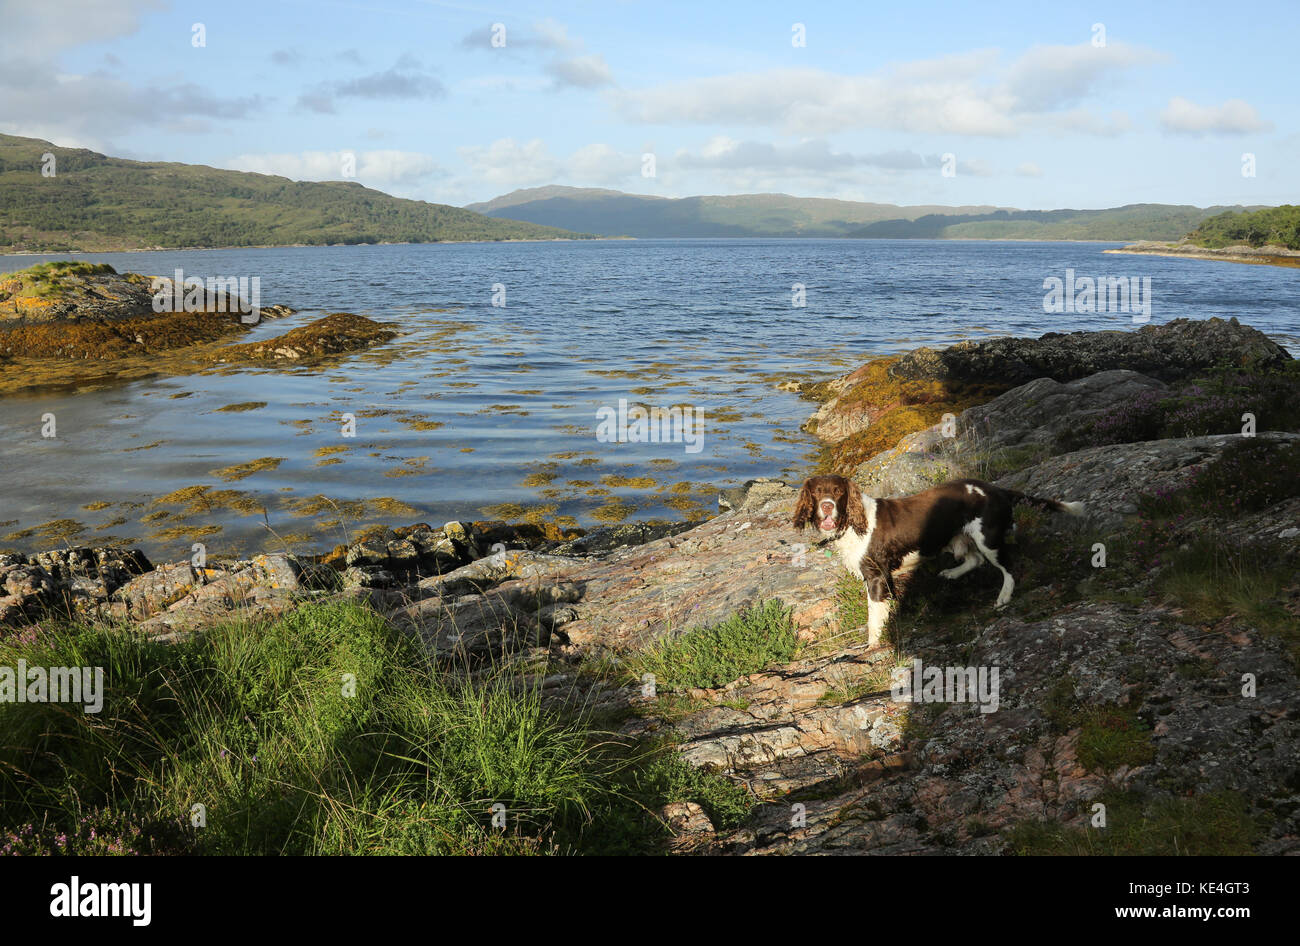 A cute English Springer Spaniel Dog (Canis lupus familiaris) standing at the edge of Loch Sunart in Scotland. - Stock Image